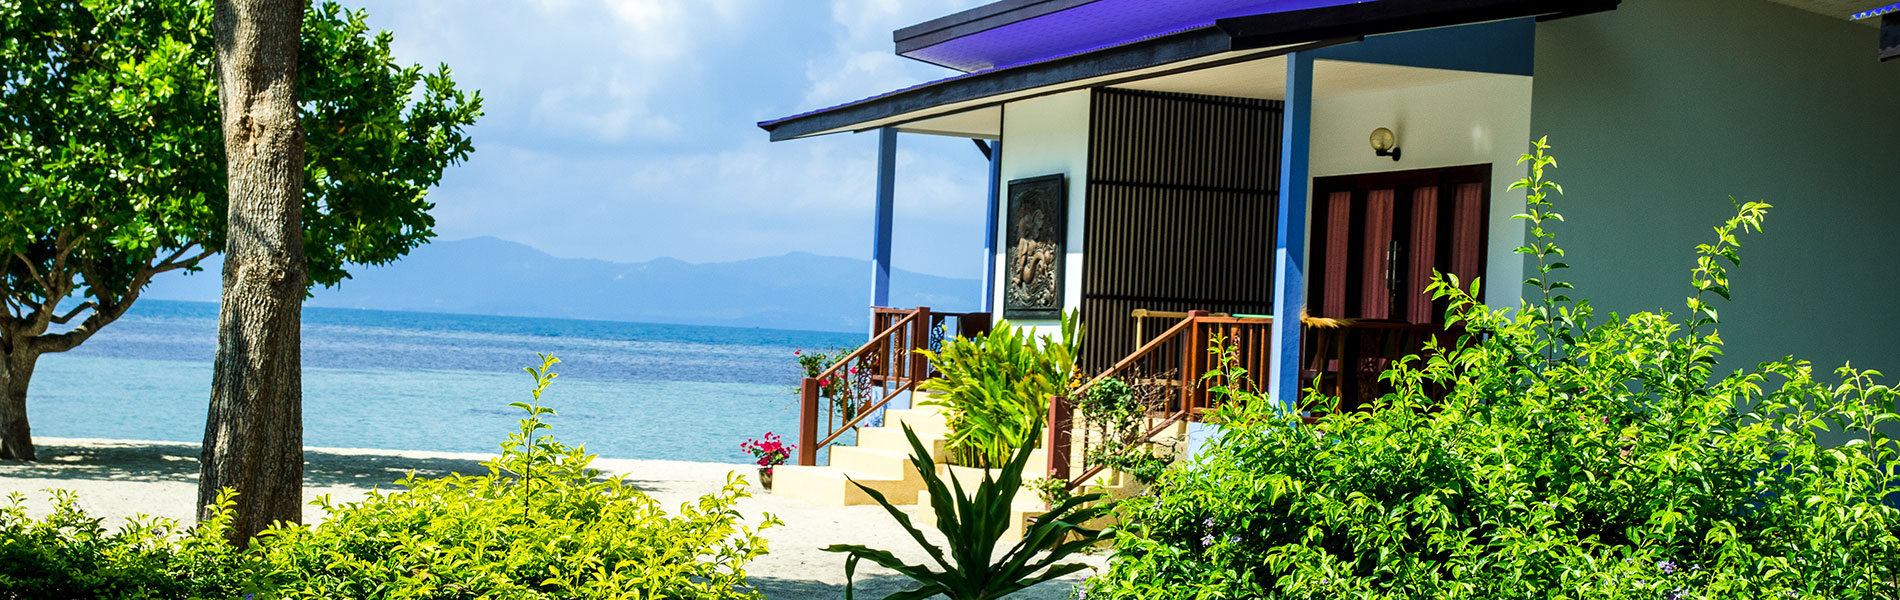 Koh Phangan Ban Tai Beach Bungalows